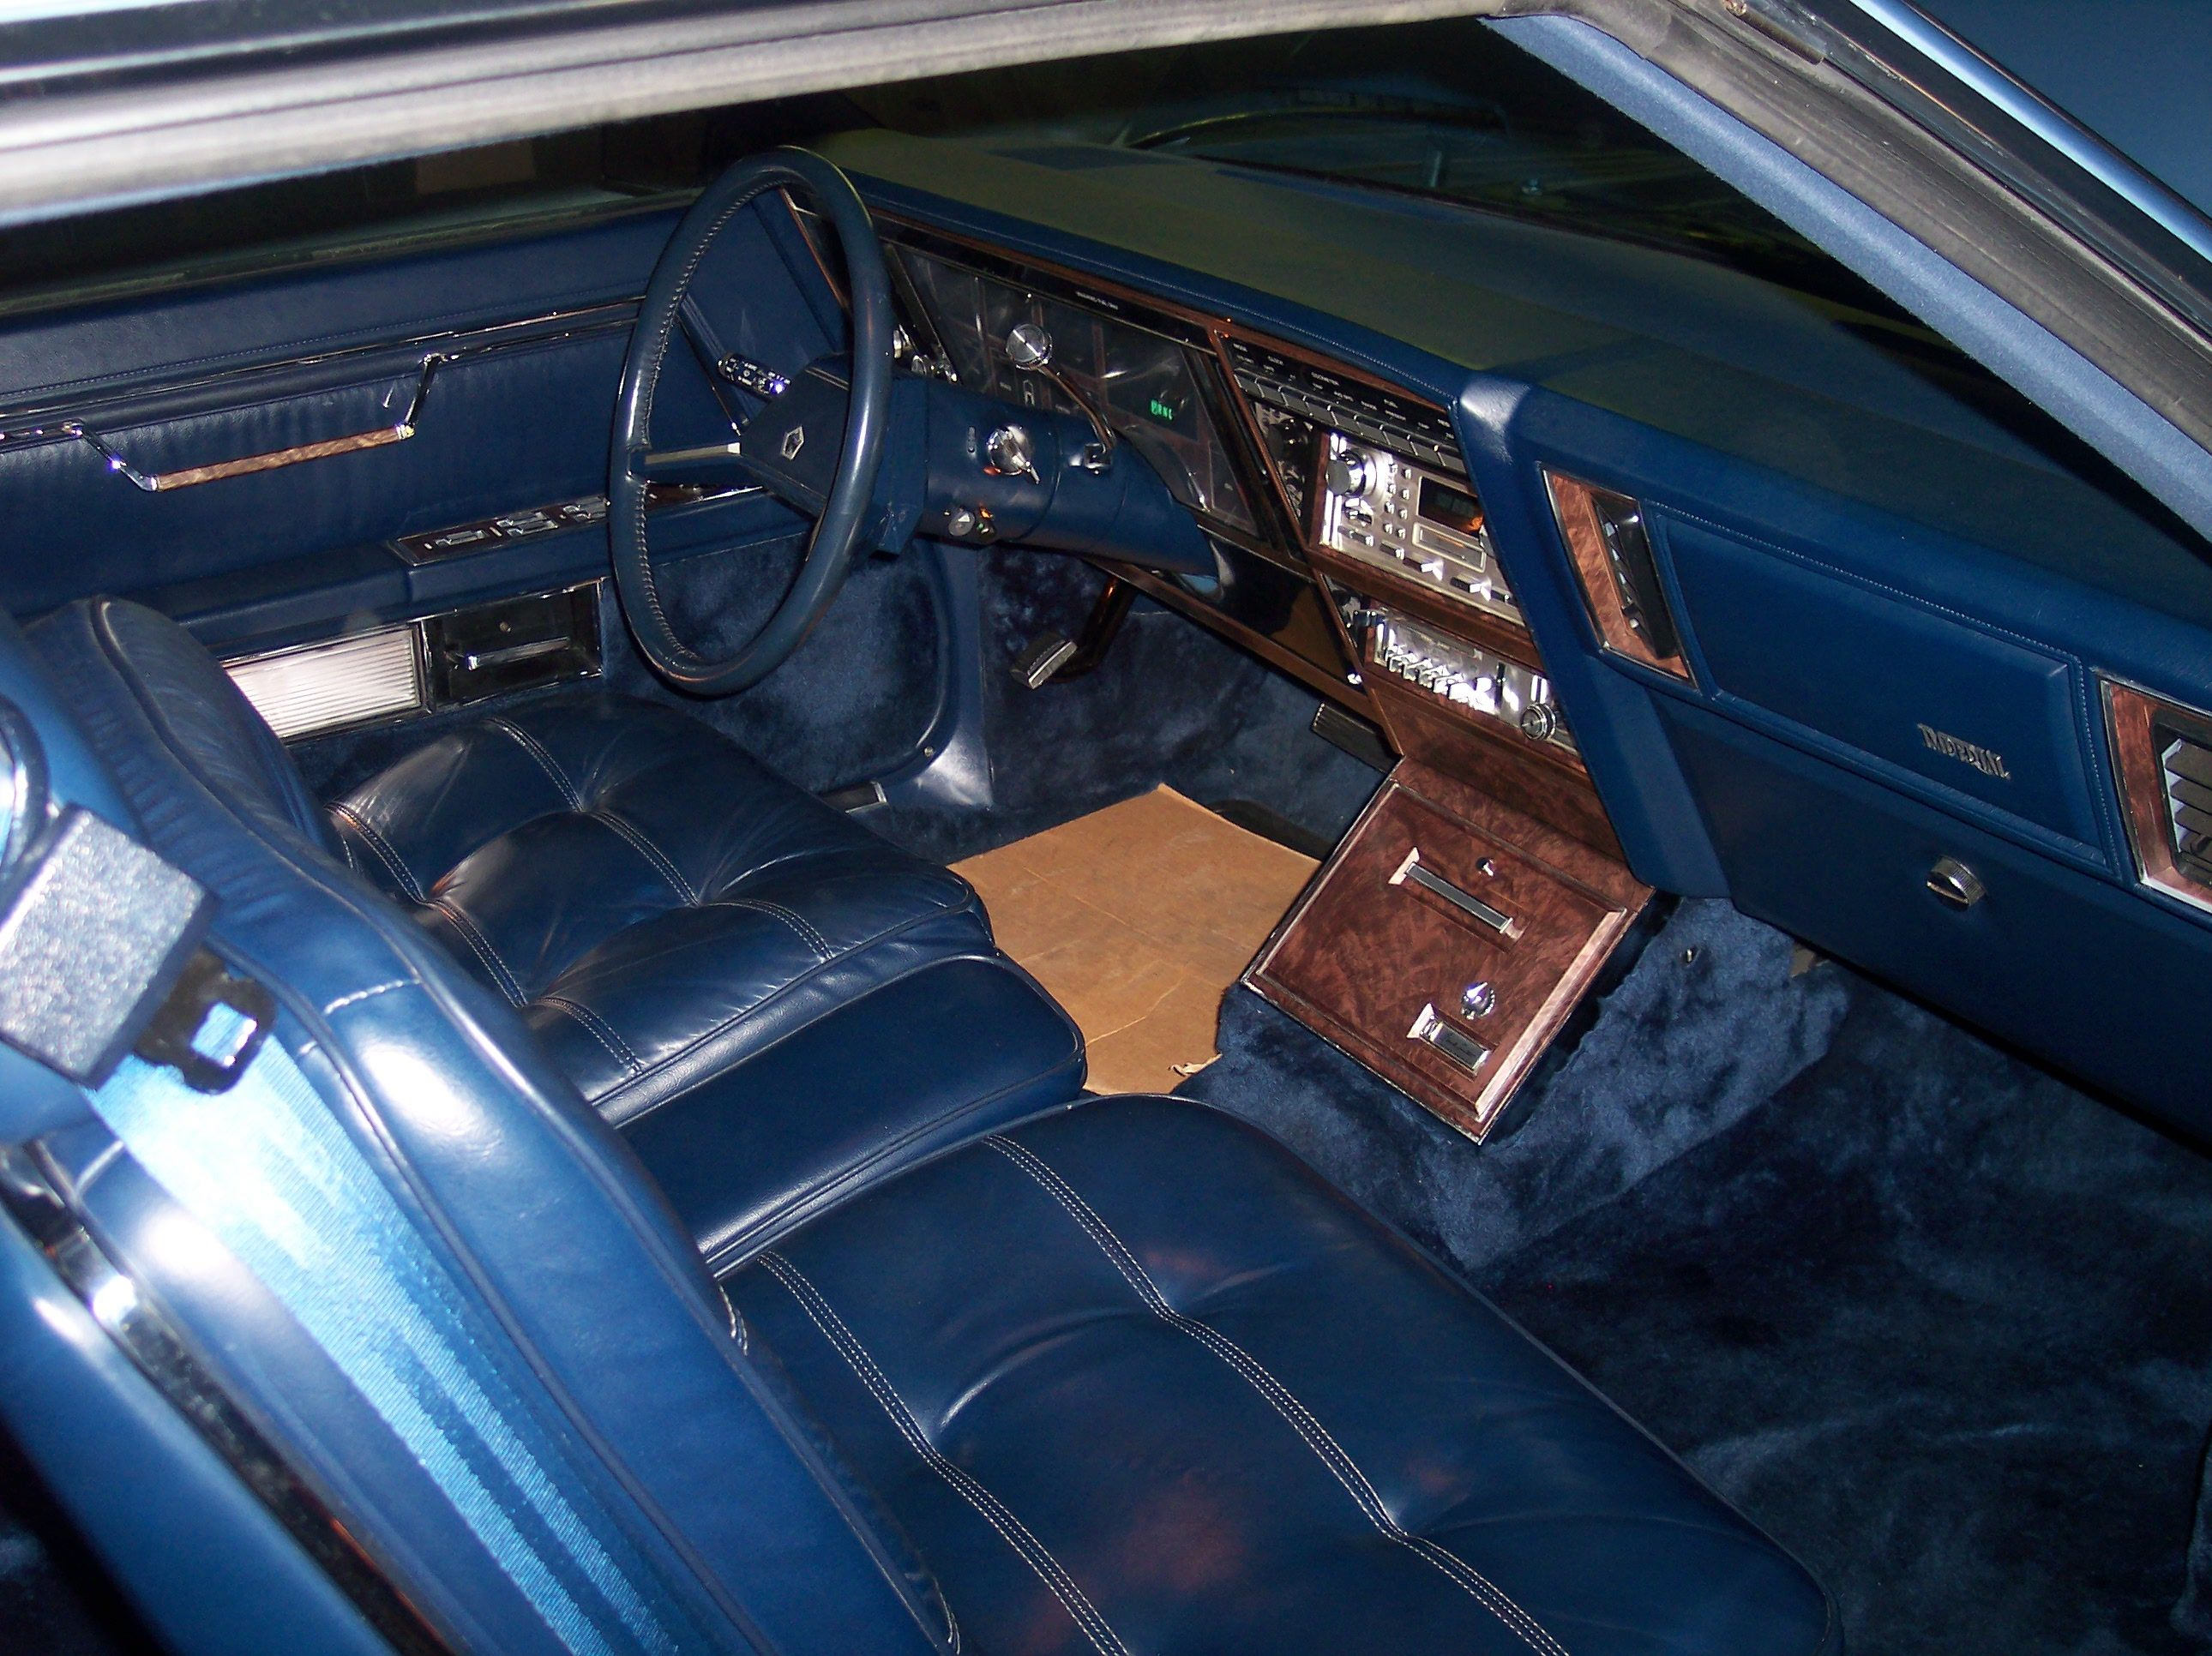 1956 chrysler imperial interior images - 1982 Chrysler Imperial Interior In Cobalt Rumored To Be Special For Iacocca